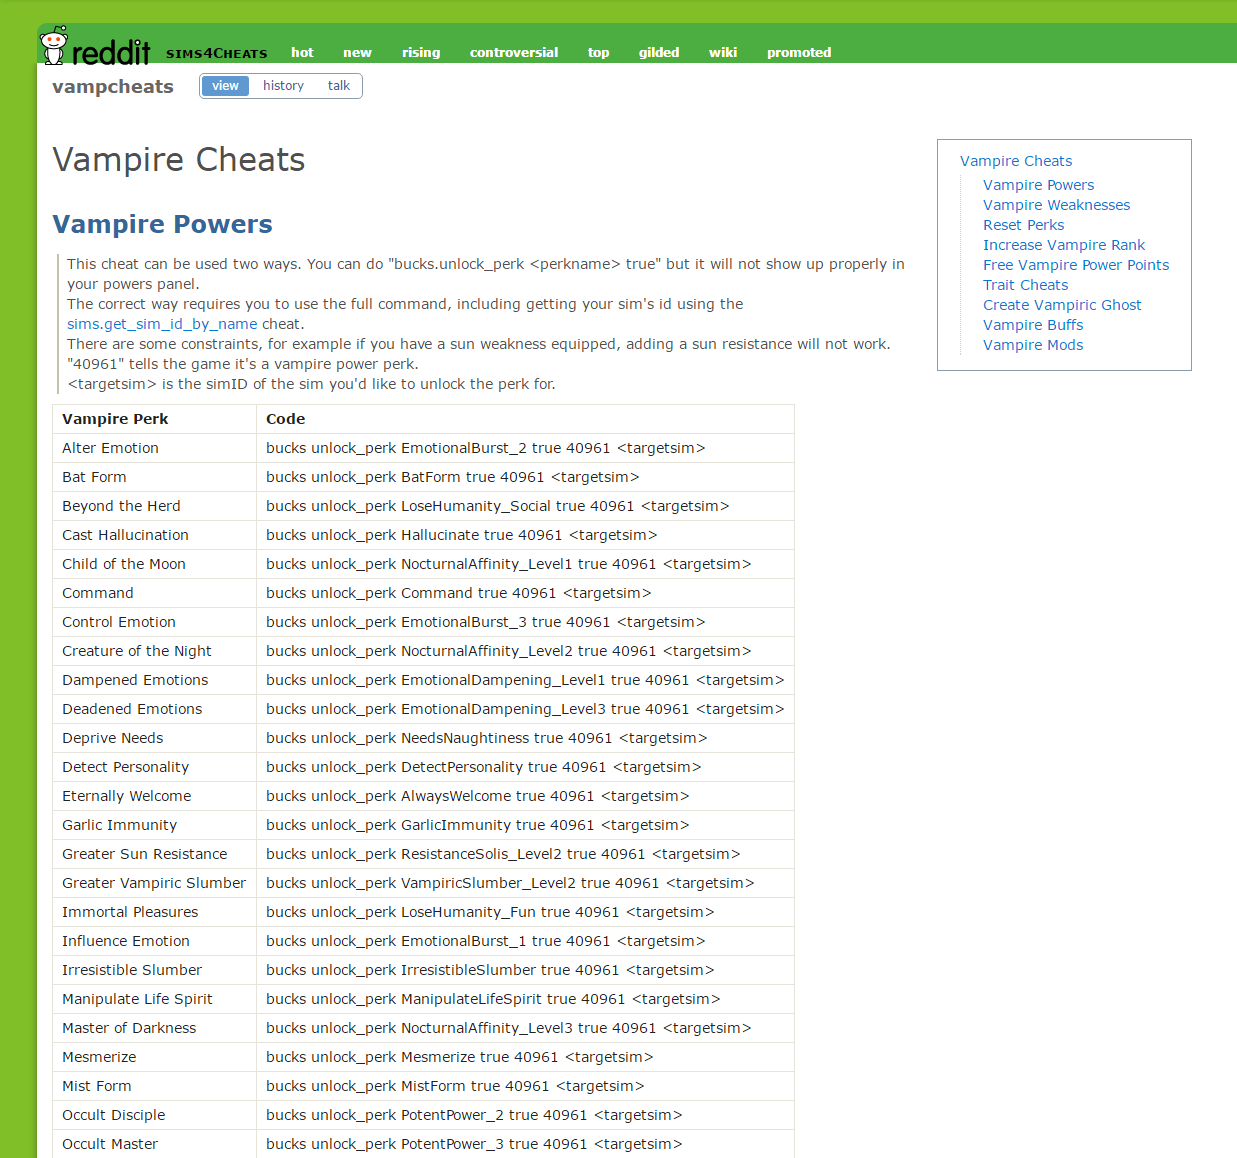 The Sims 4 Vampires: Cheat Sheet Master List by TwistedMexi